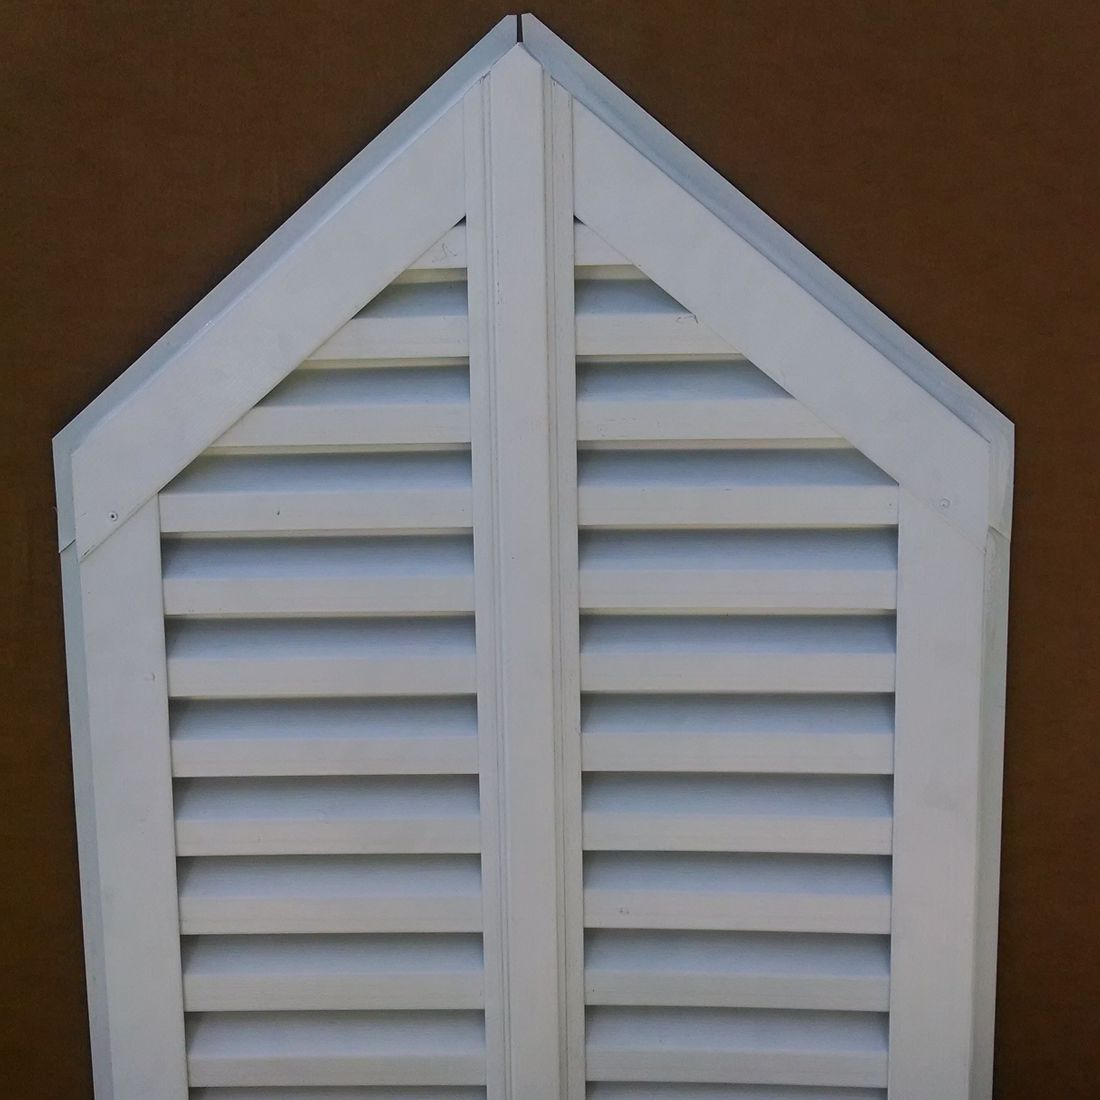 Two Piece Doghouse gable vent